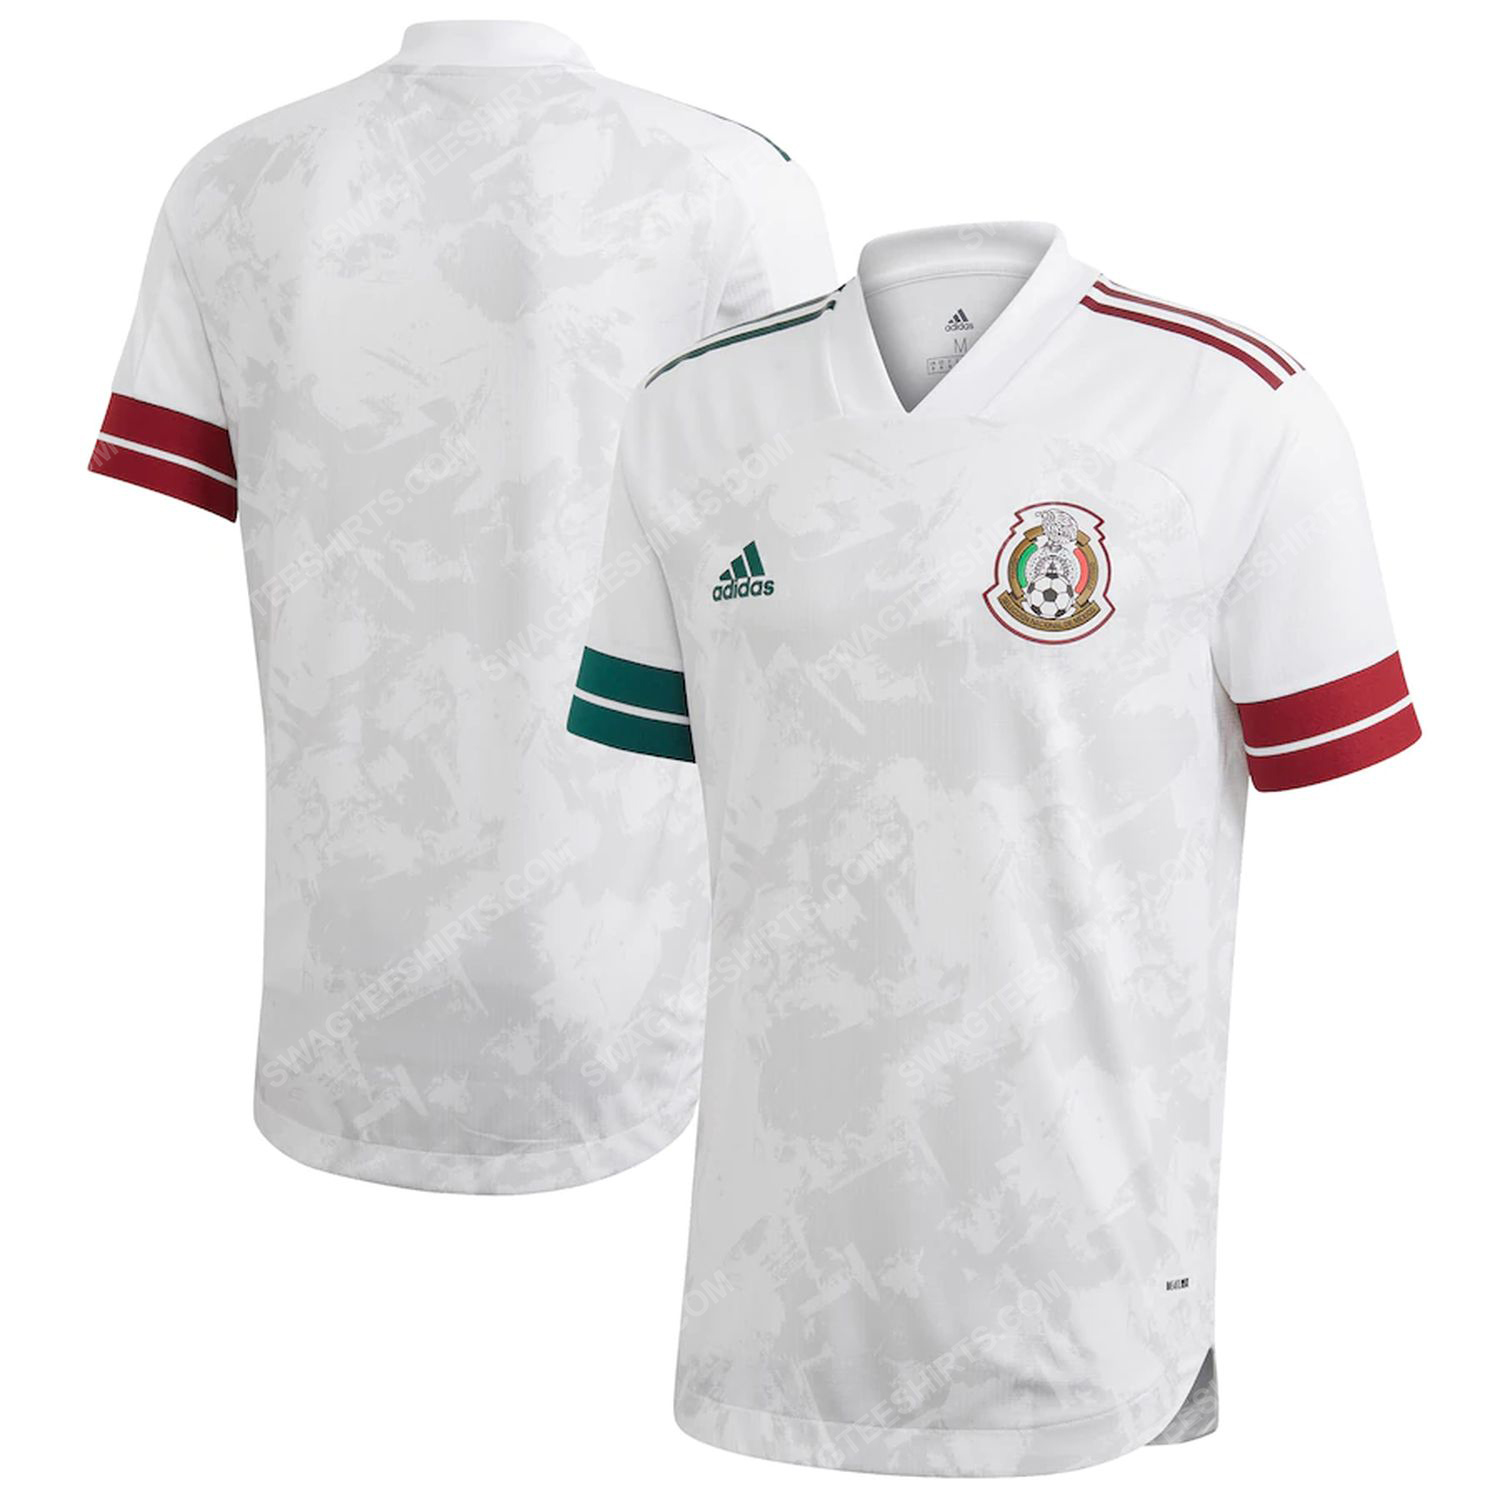 The mexico national team all over print football jersey